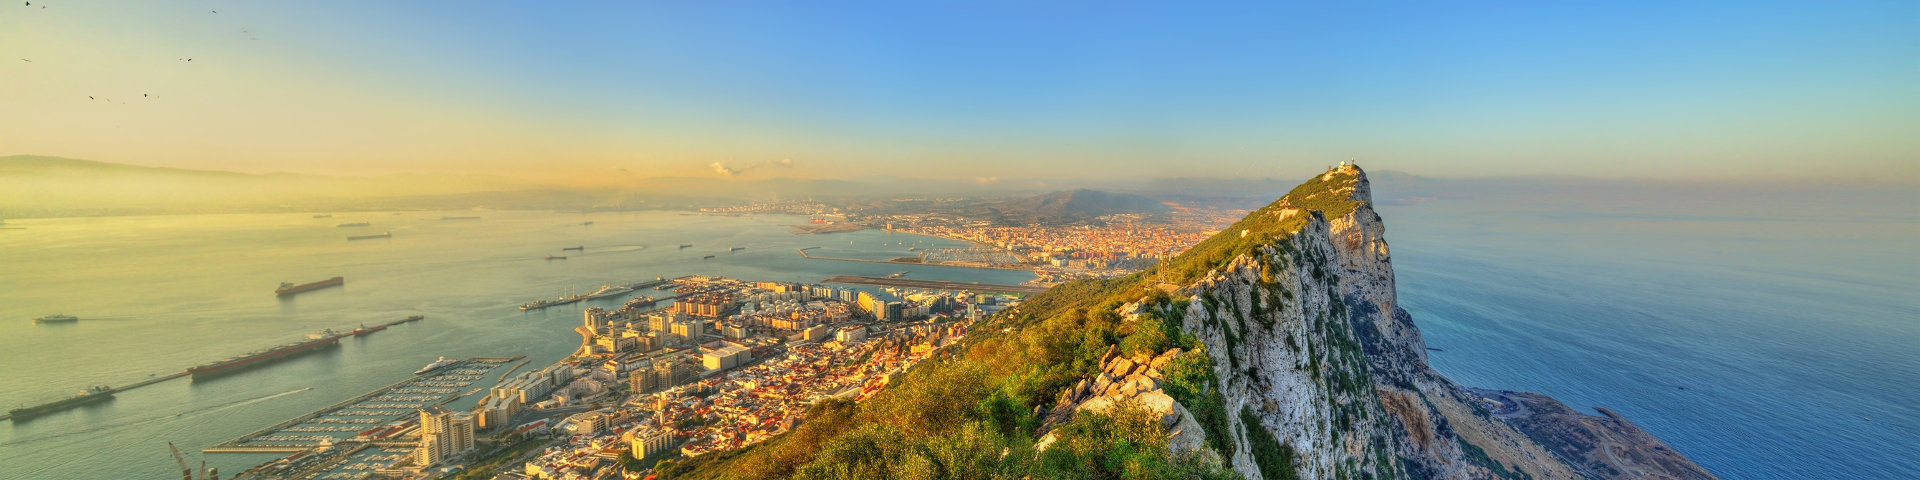 Hero gibraltar city skyline edited